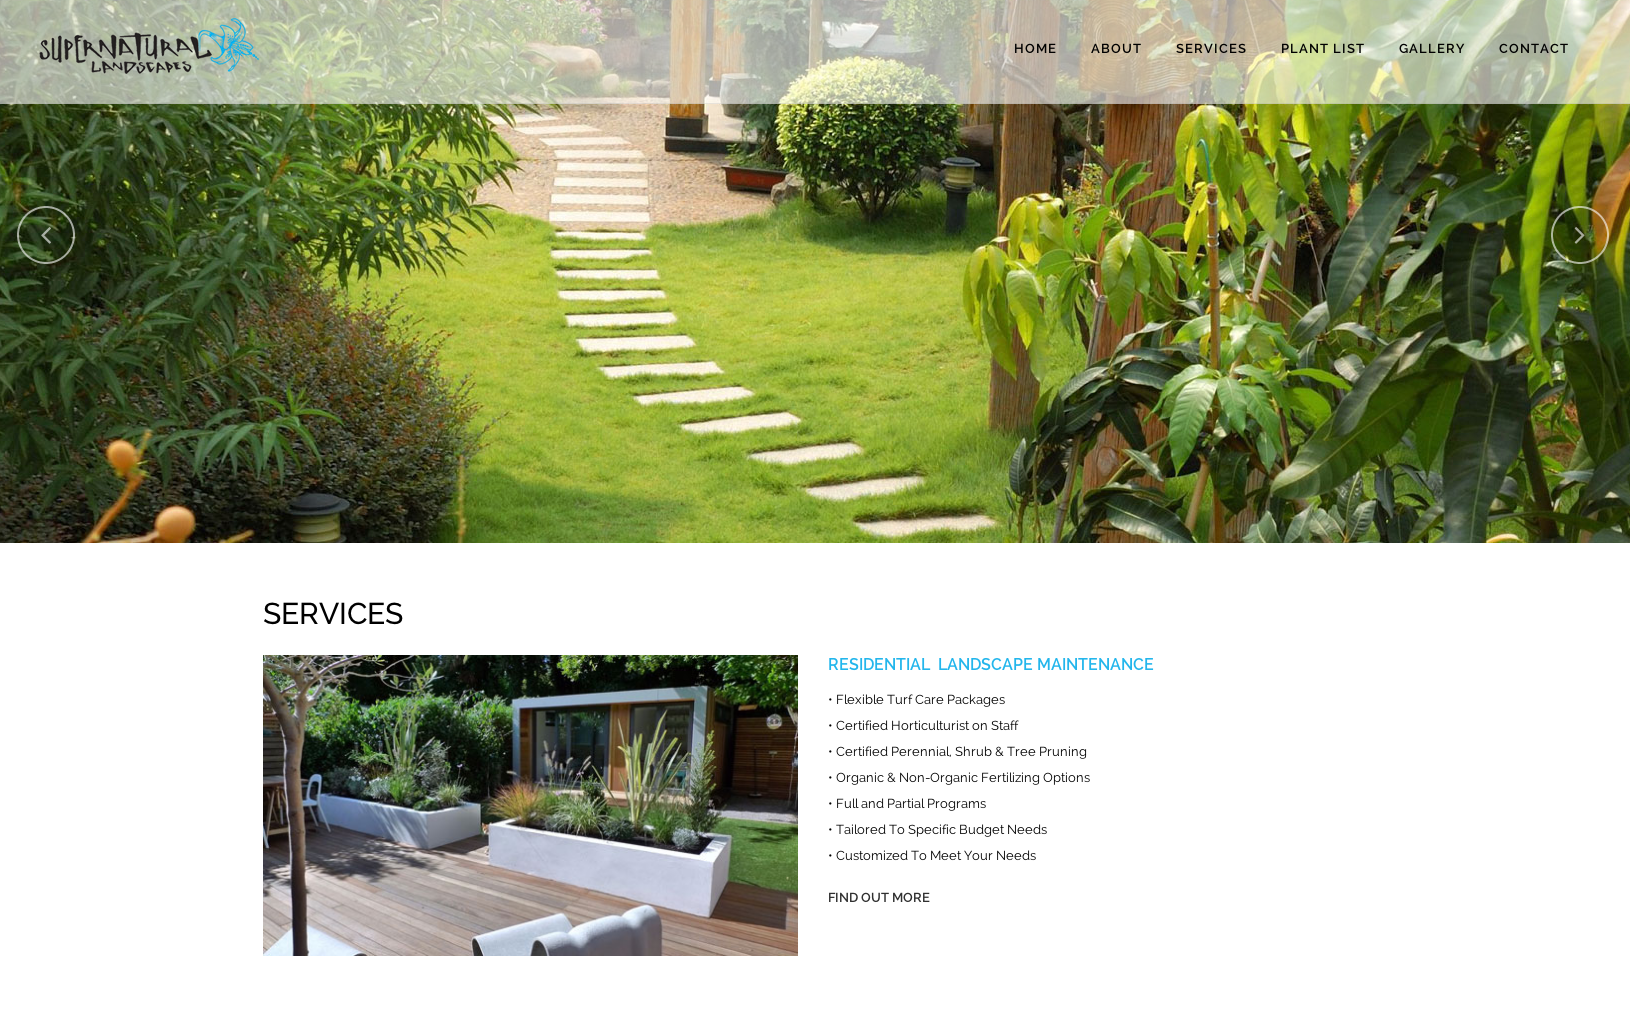 Sea Salt Web Design Whistler landscape website 4